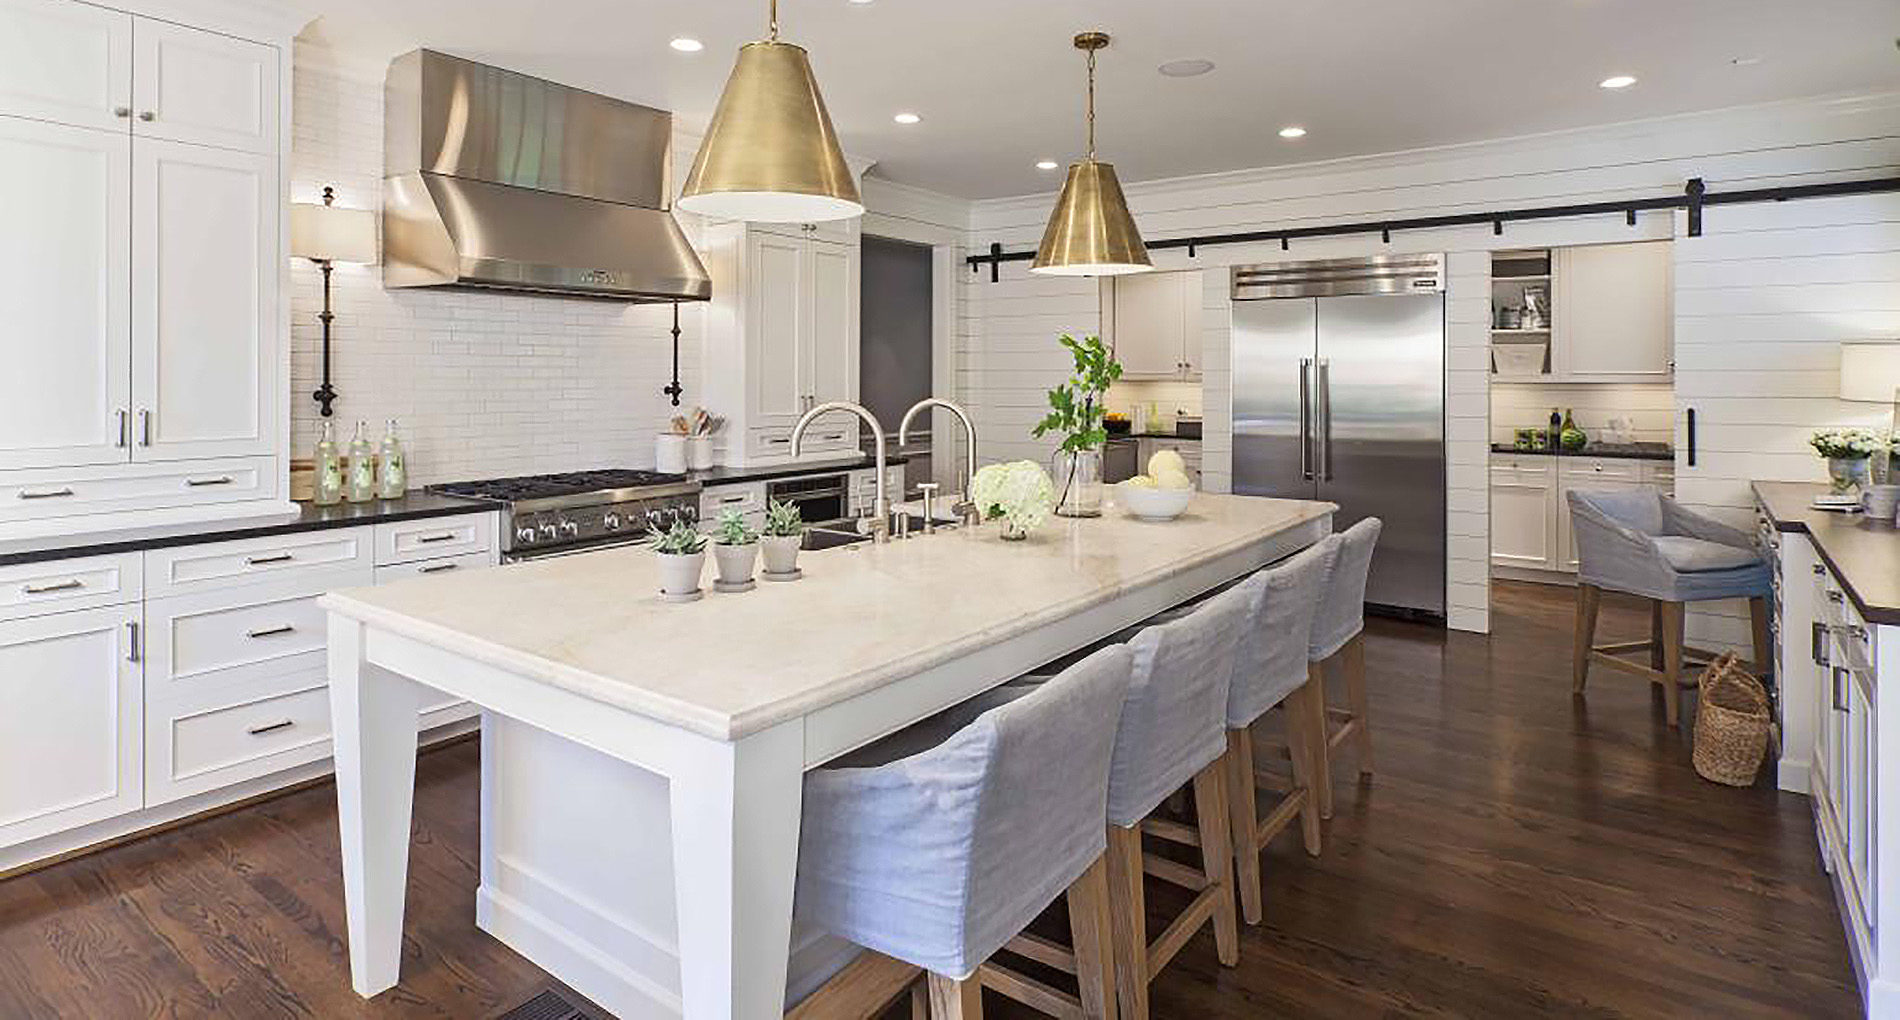 Red Fox Kitchen and Bath Renovation | Alair Homes Charlotte